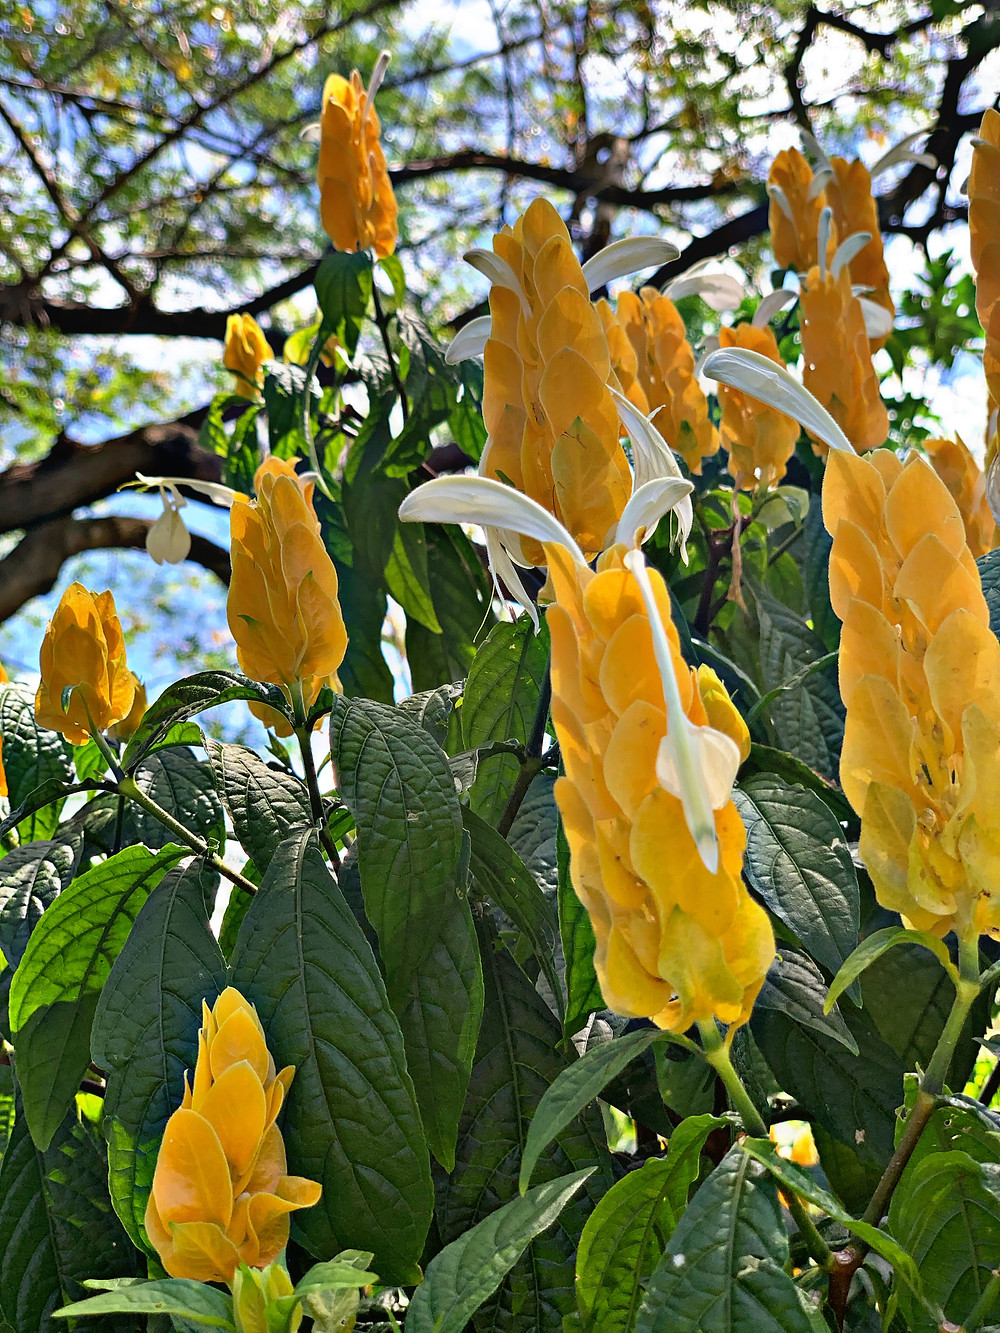 Power of the flower, these gorgeous Hawaiian flowers stand tall in their natural beauty